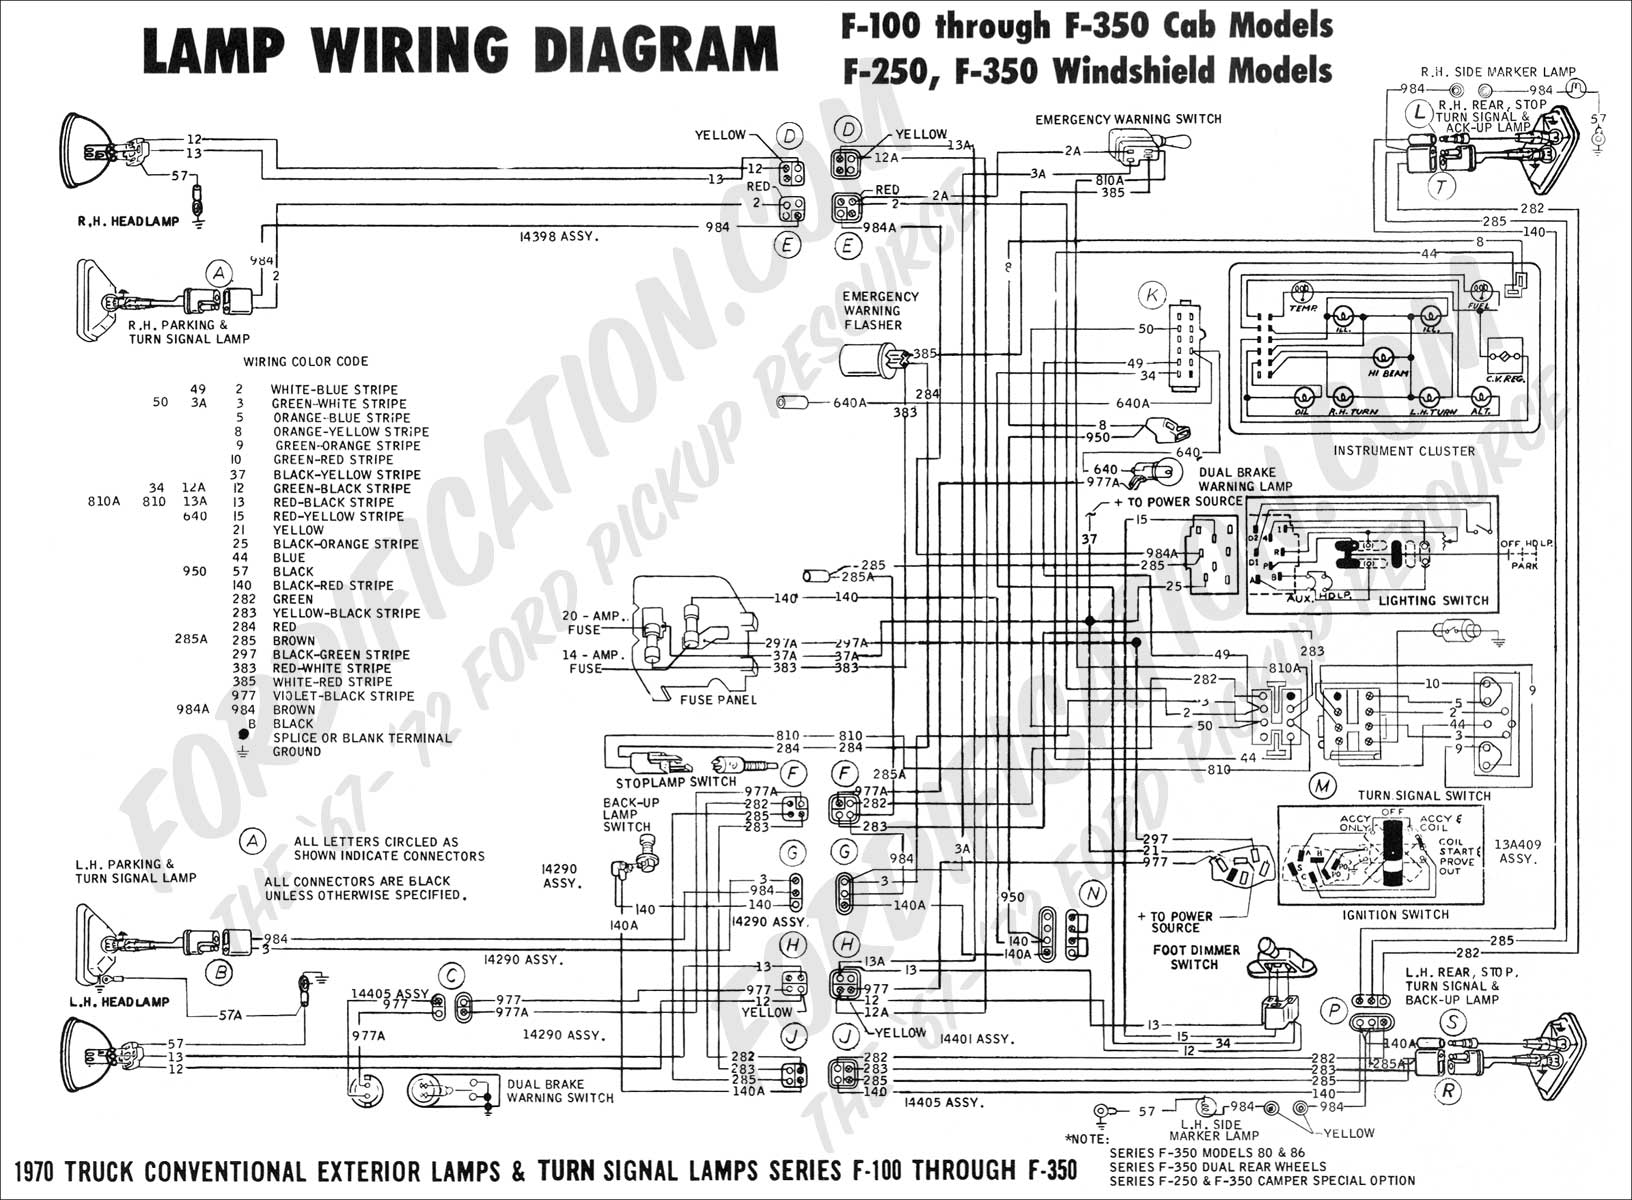 94 Ford F 350 Wiring Diagram Fe Wiring Diagrams Ford Van Fuse Box Diagram  2001 Ford E 450 Fuse Diagram